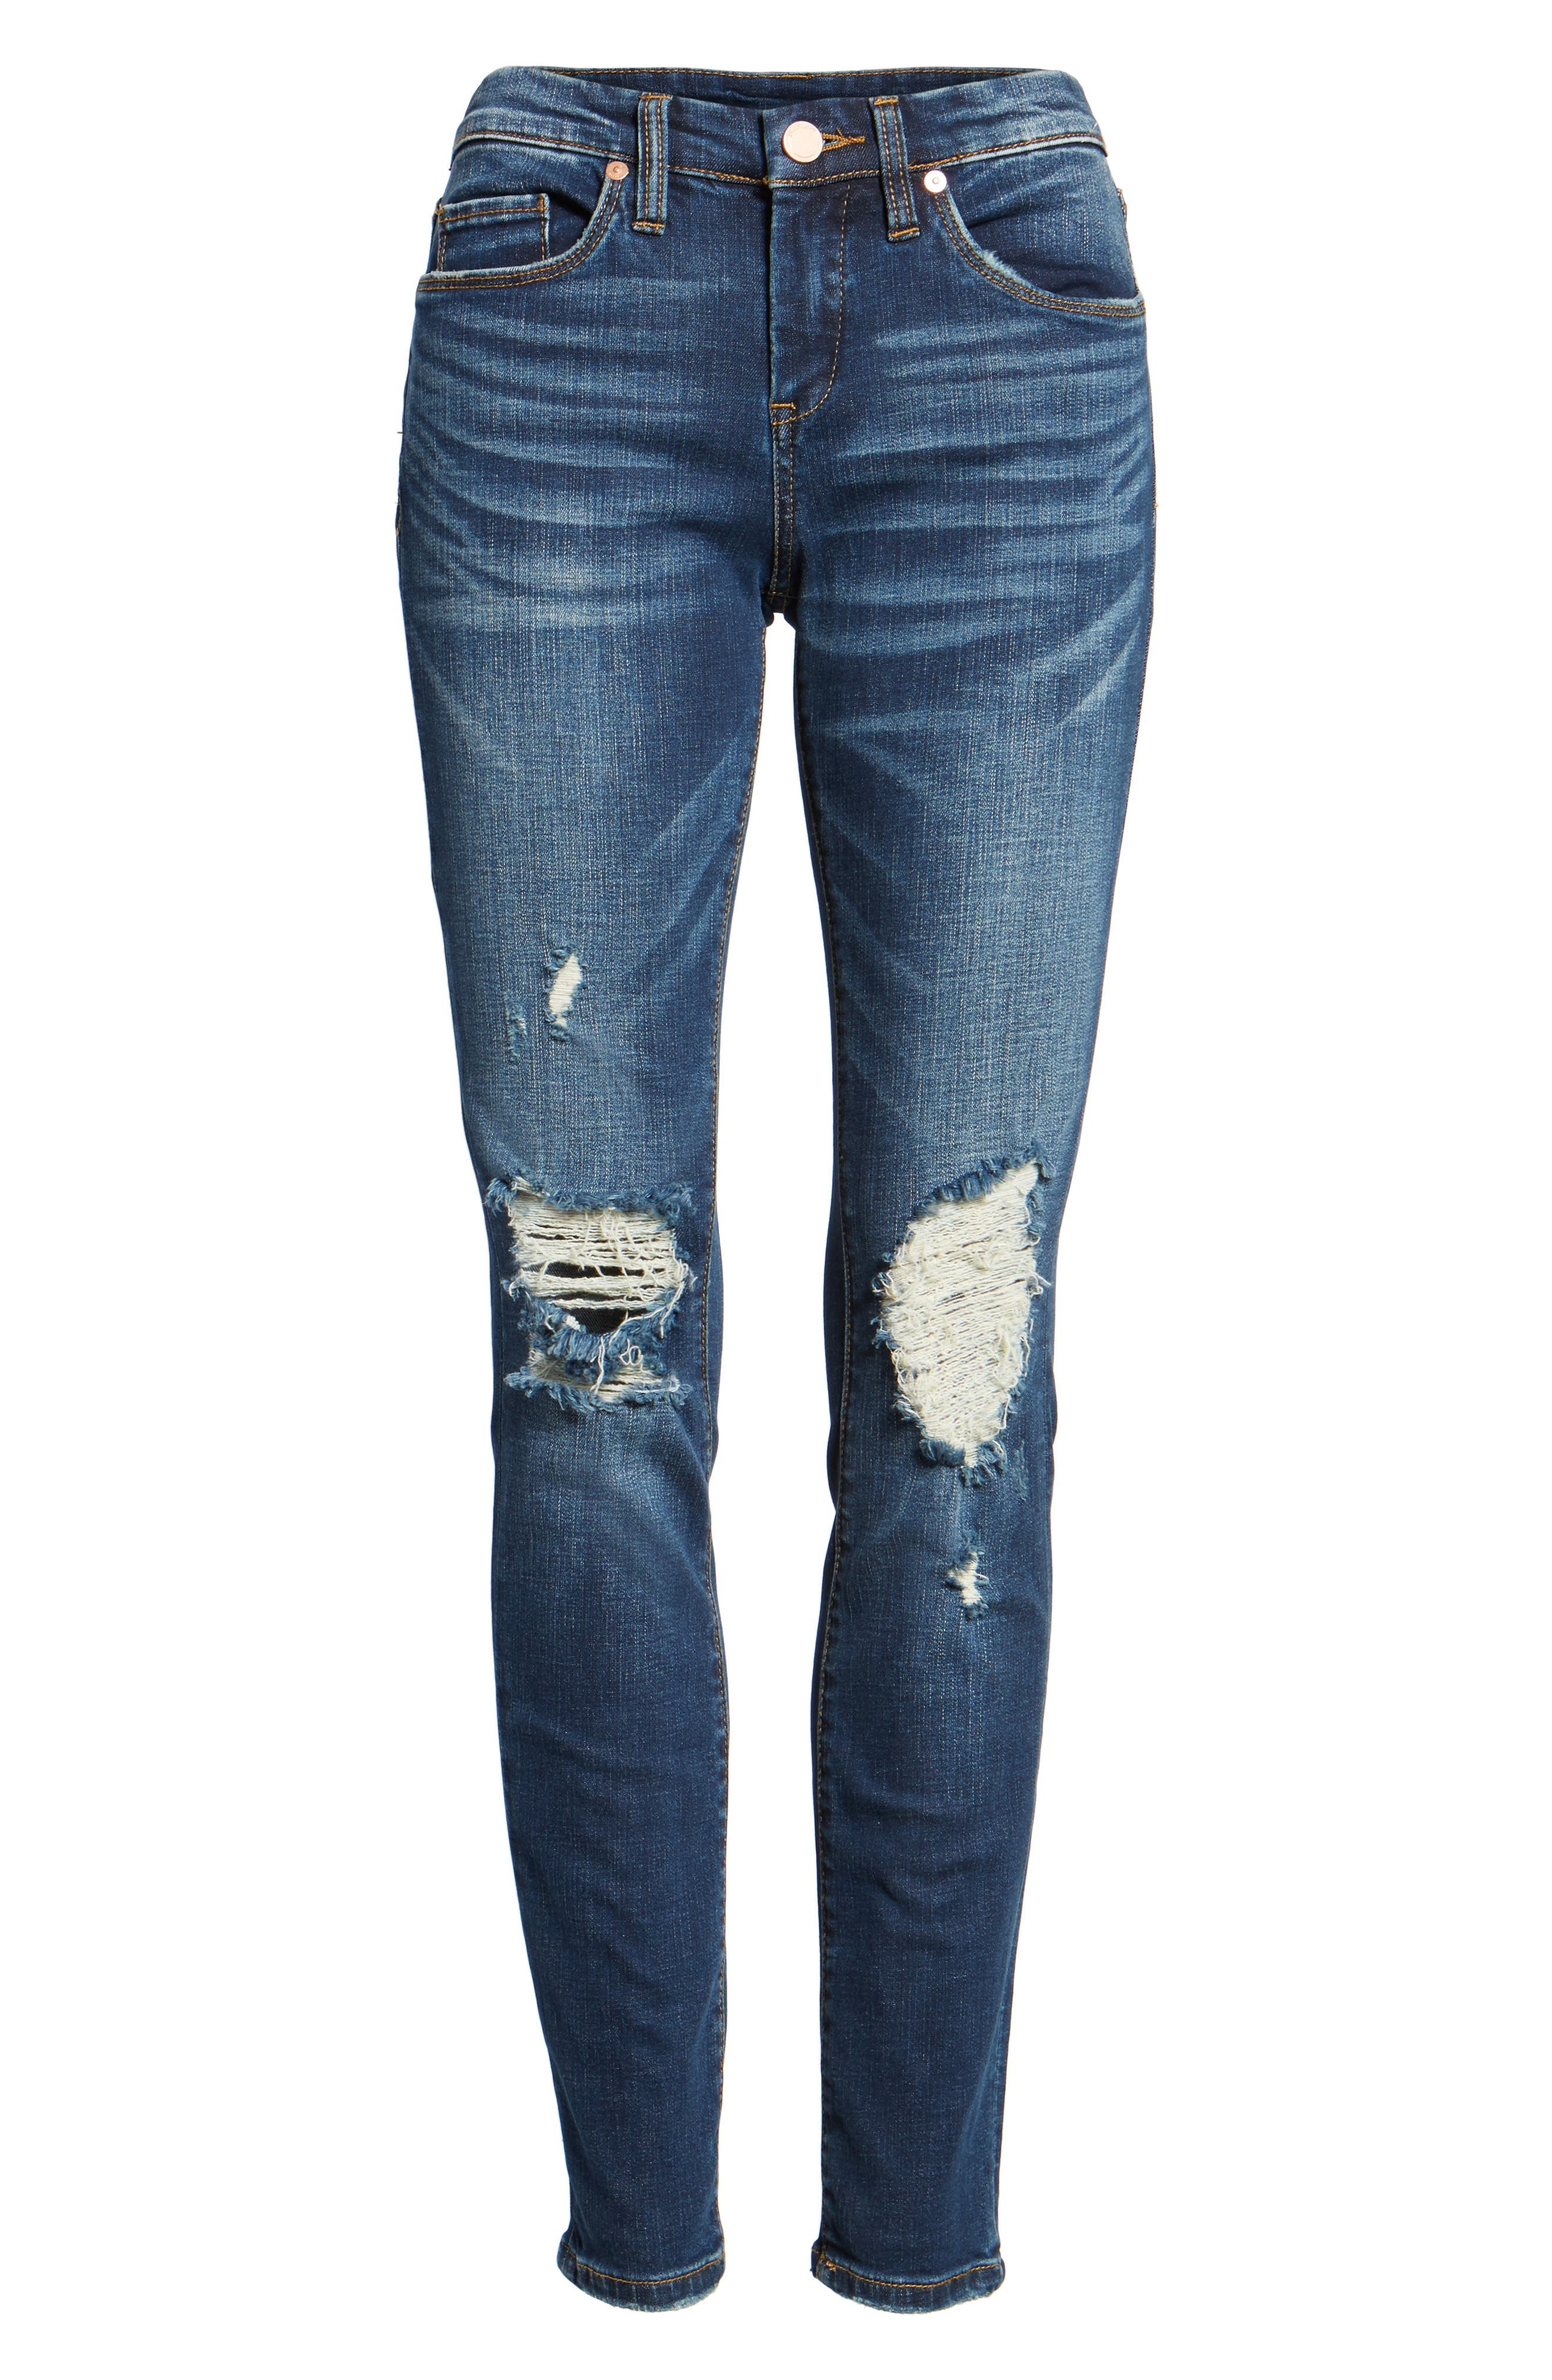 Decon Cult Classic Skinny Jeans,                             Alternate thumbnail 6, color,                             400